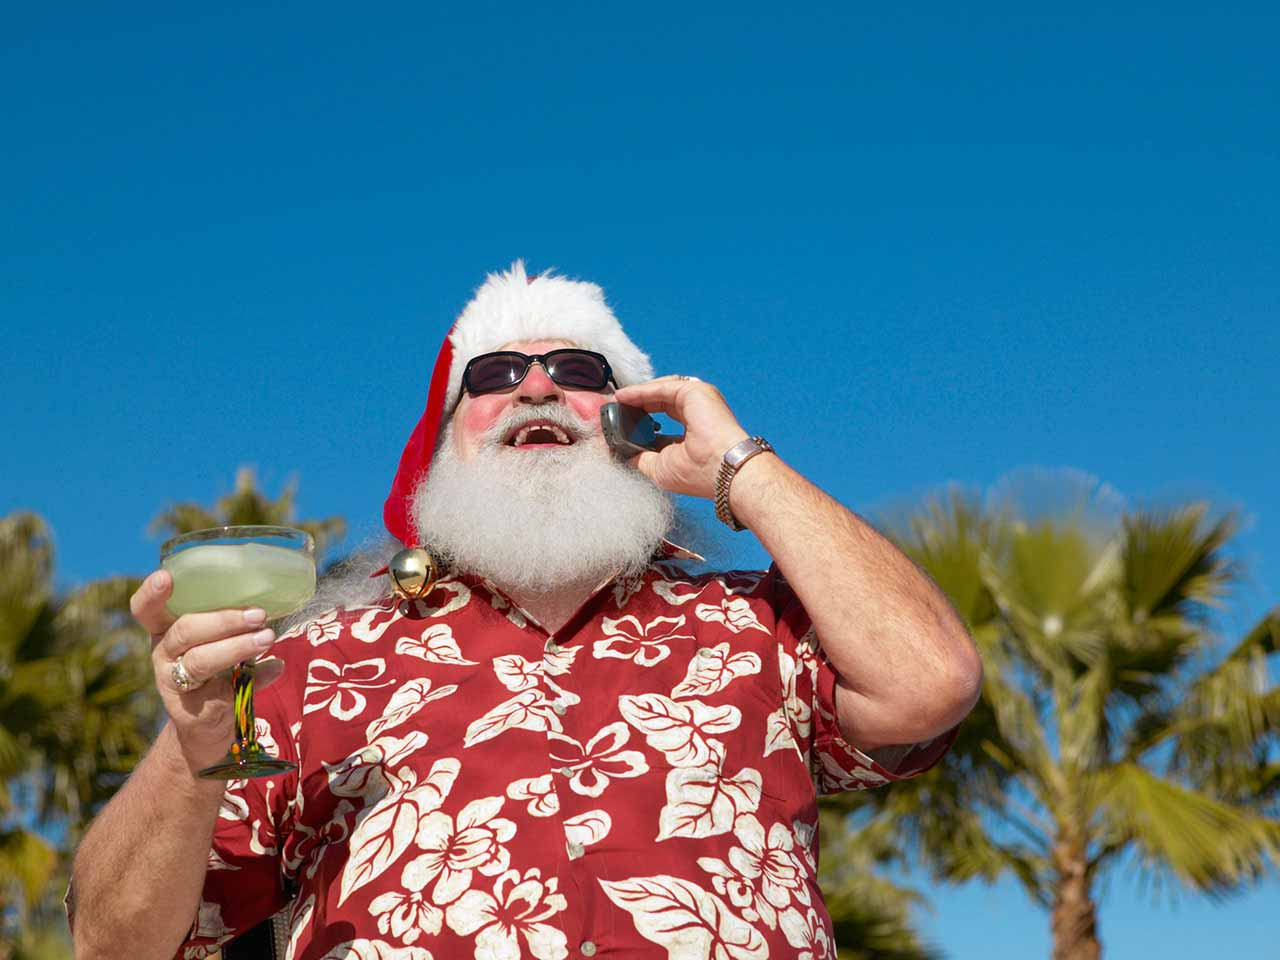 Man dressed as Father Christmas drinking a cocktail in the sun